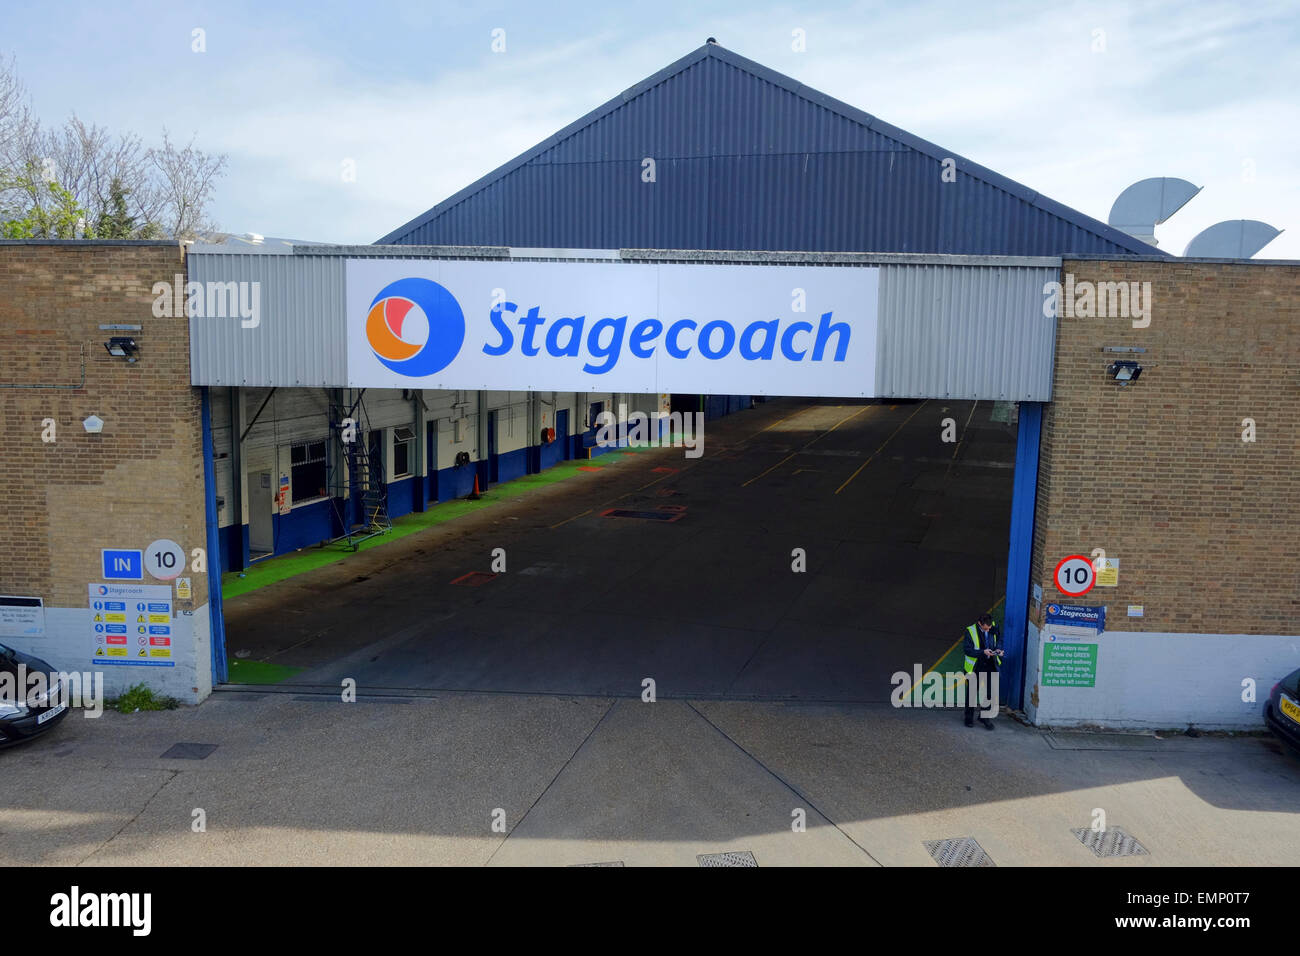 Stagecoach bus depot in Bedford Stock Photo, Royalty Free